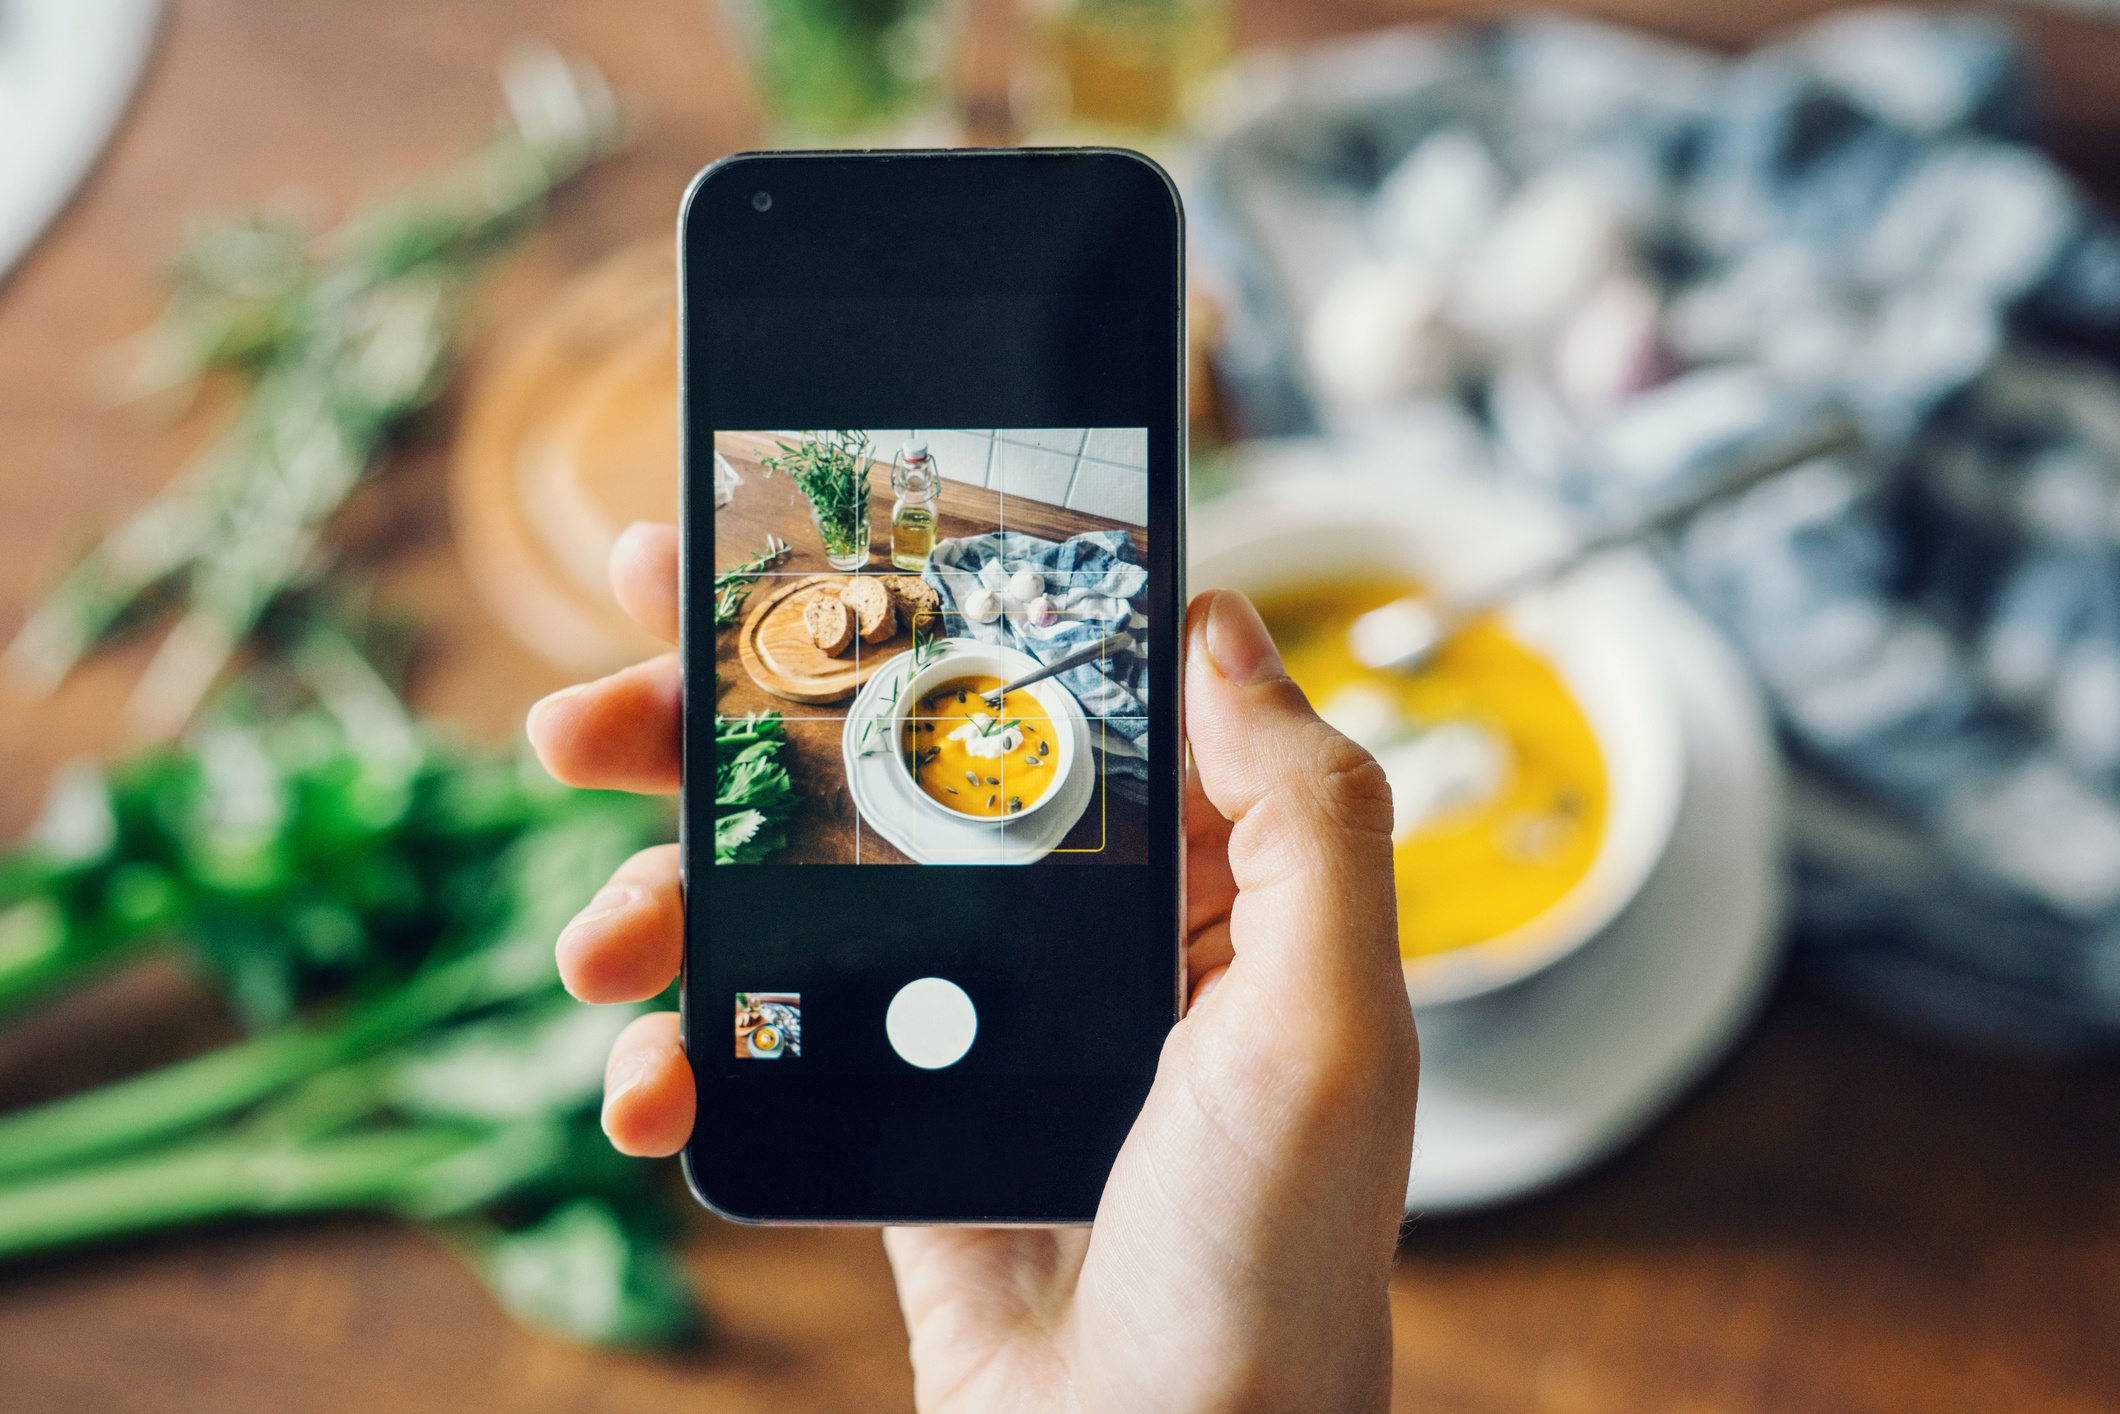 From iPhone to Nikon: 5 Tips on Upping Your Food Photography Game